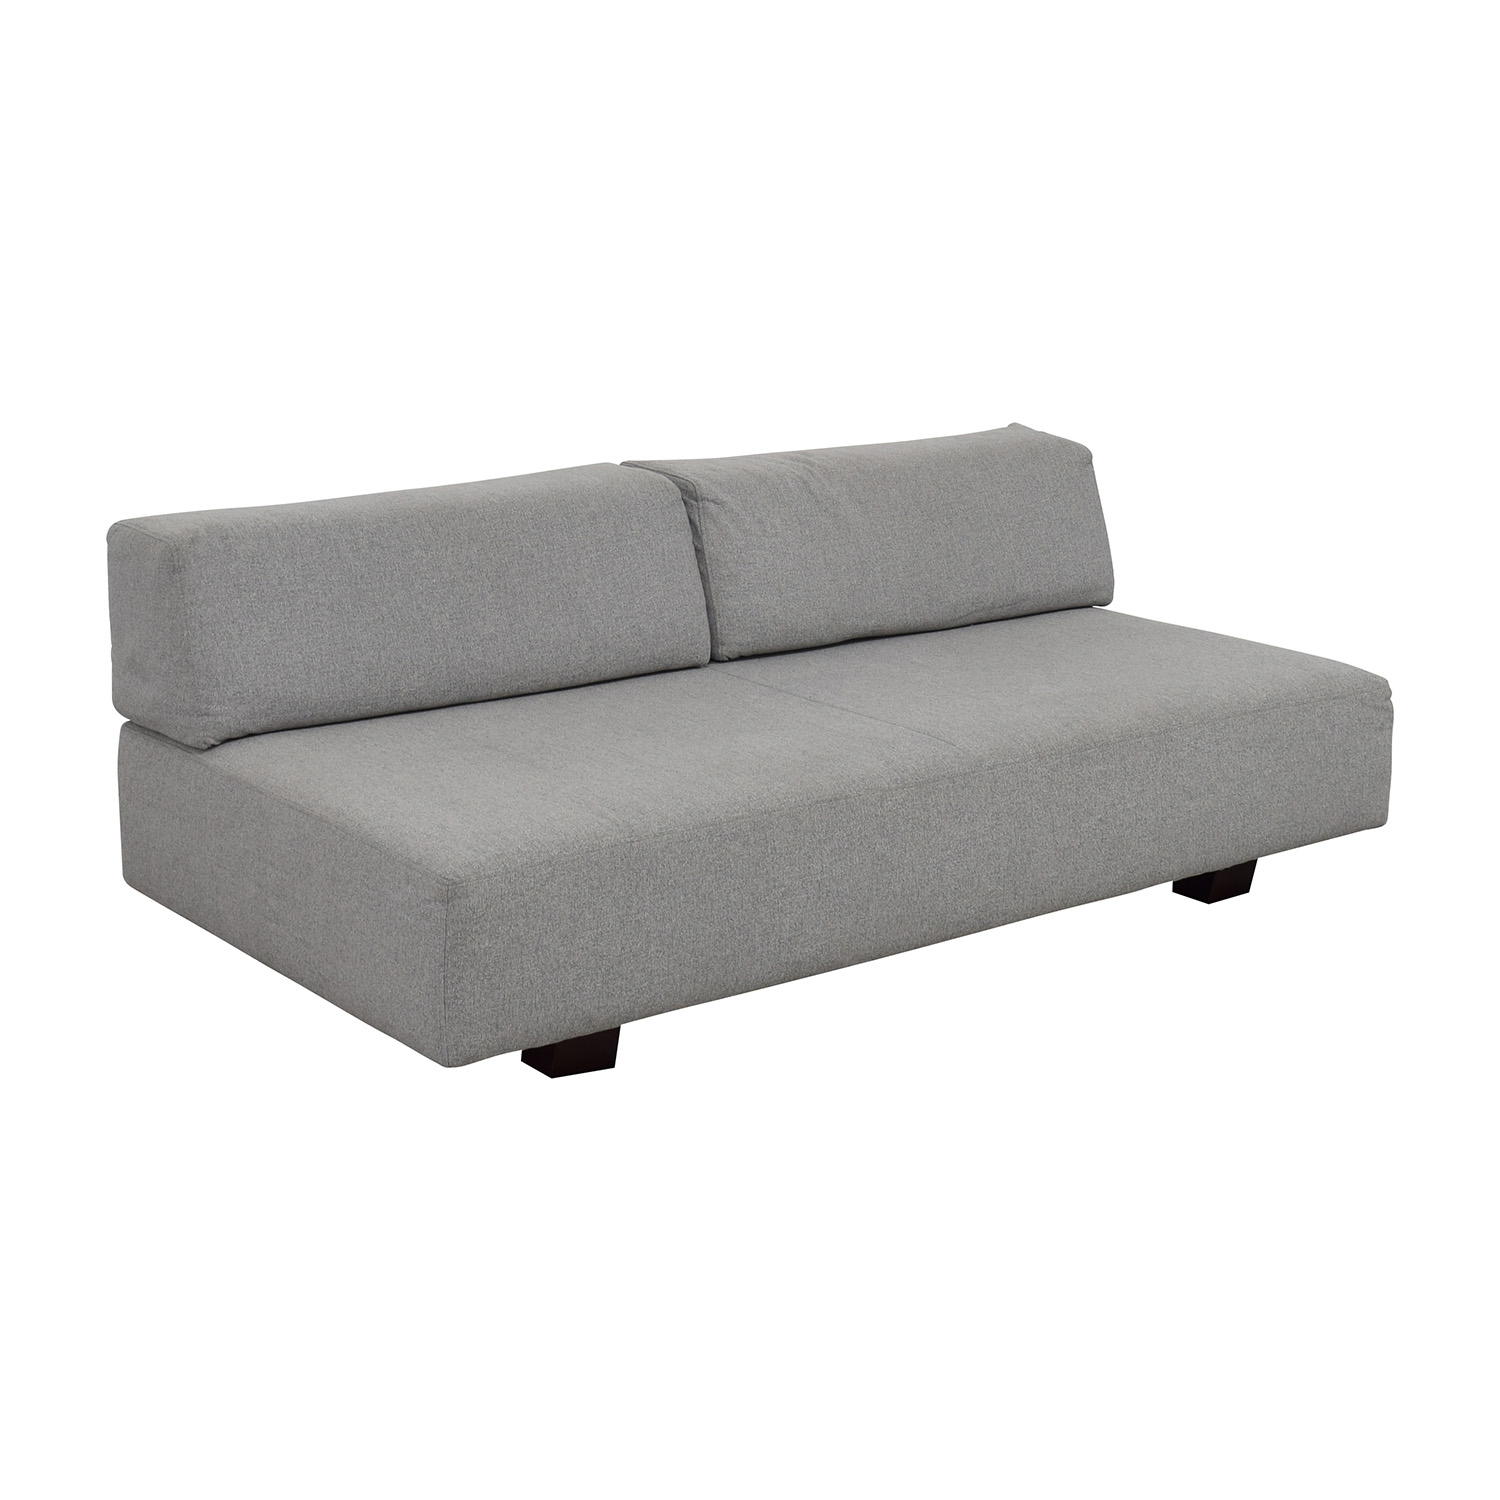 62 Off West Elm West Elm Tillary Modular Seating Sofas